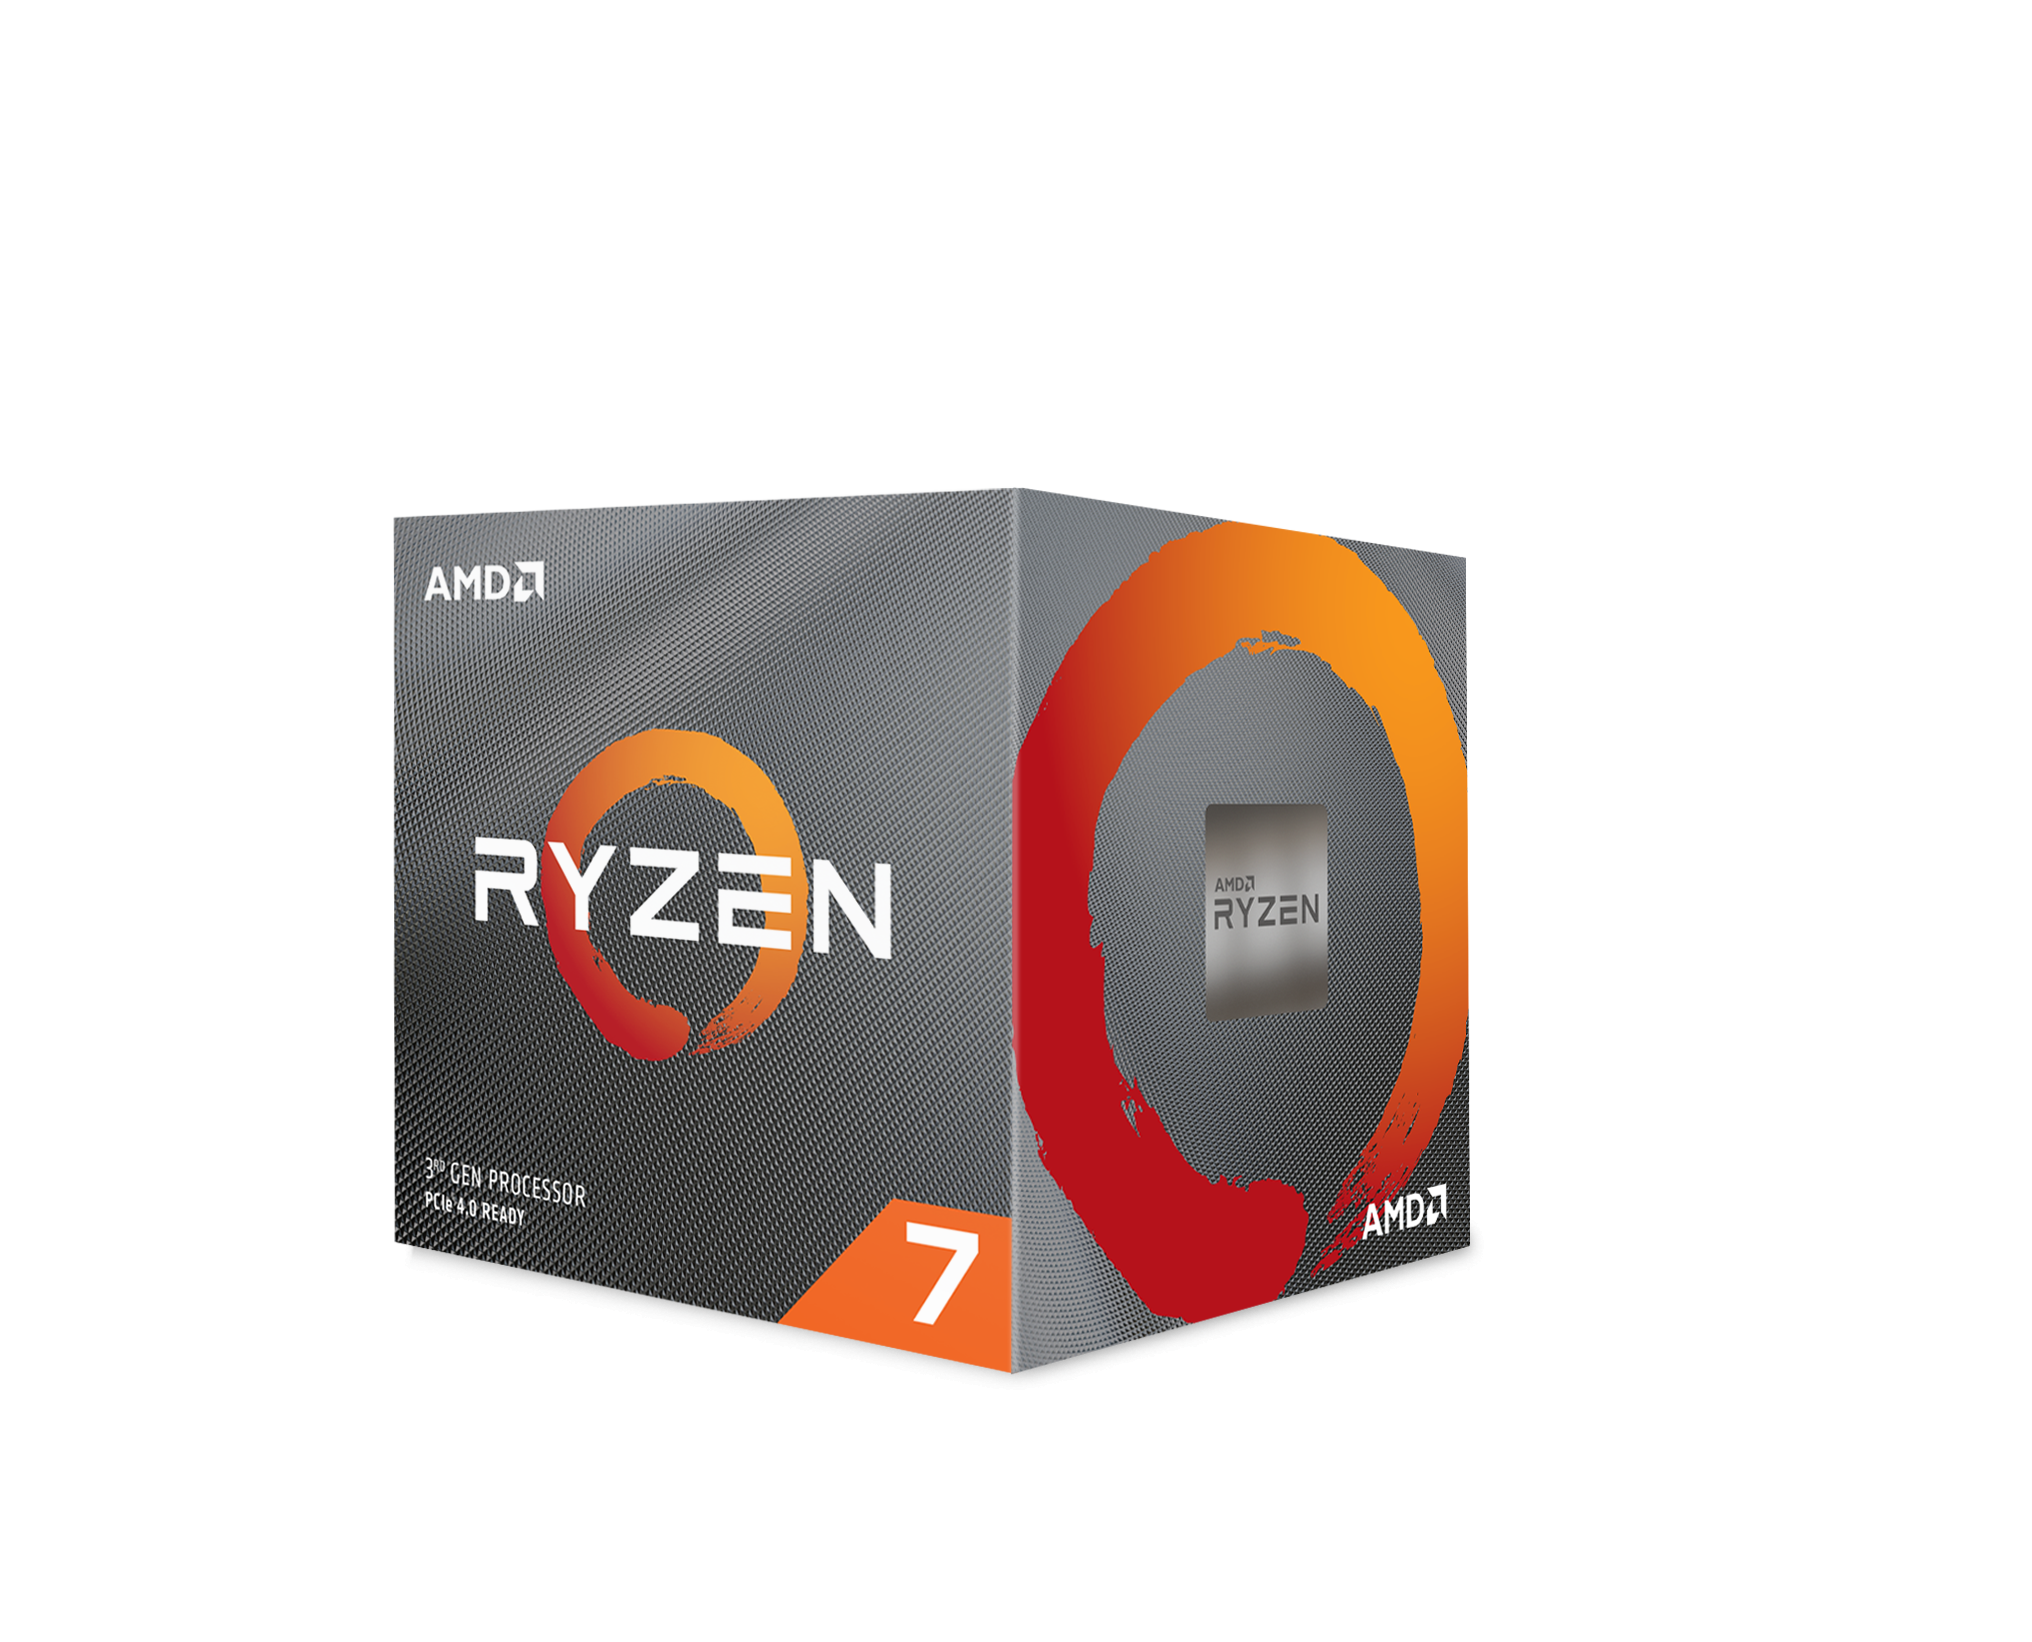 Процесор AMD RYZEN 7 3800X 8-Core 3.9 GHz (4.5 GHz Turbo) 36MB/105W/AM4/BOX-2